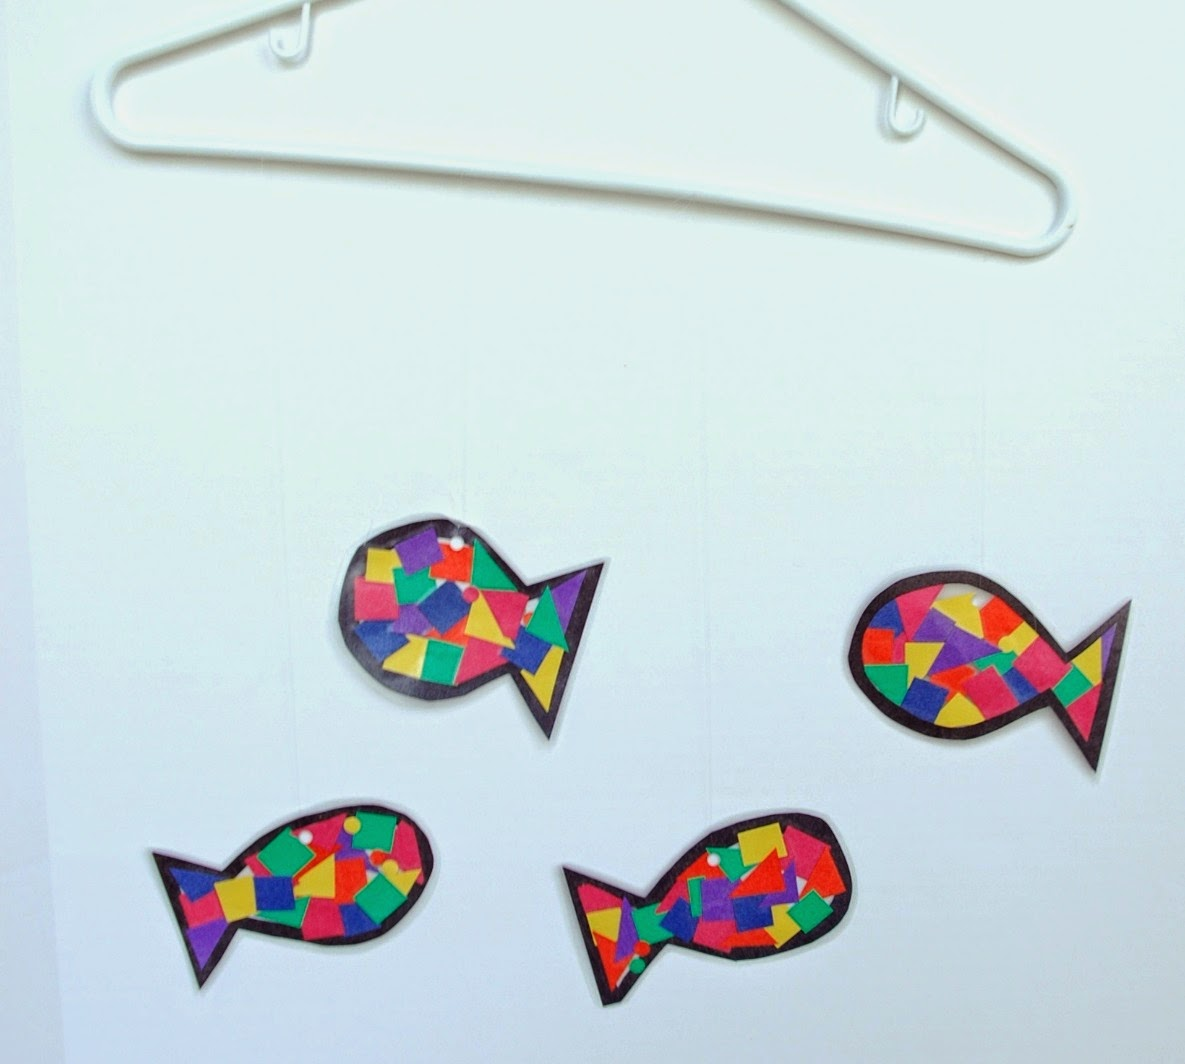 Rainbow Fish Craft, with clothes hanger ready for ocean background